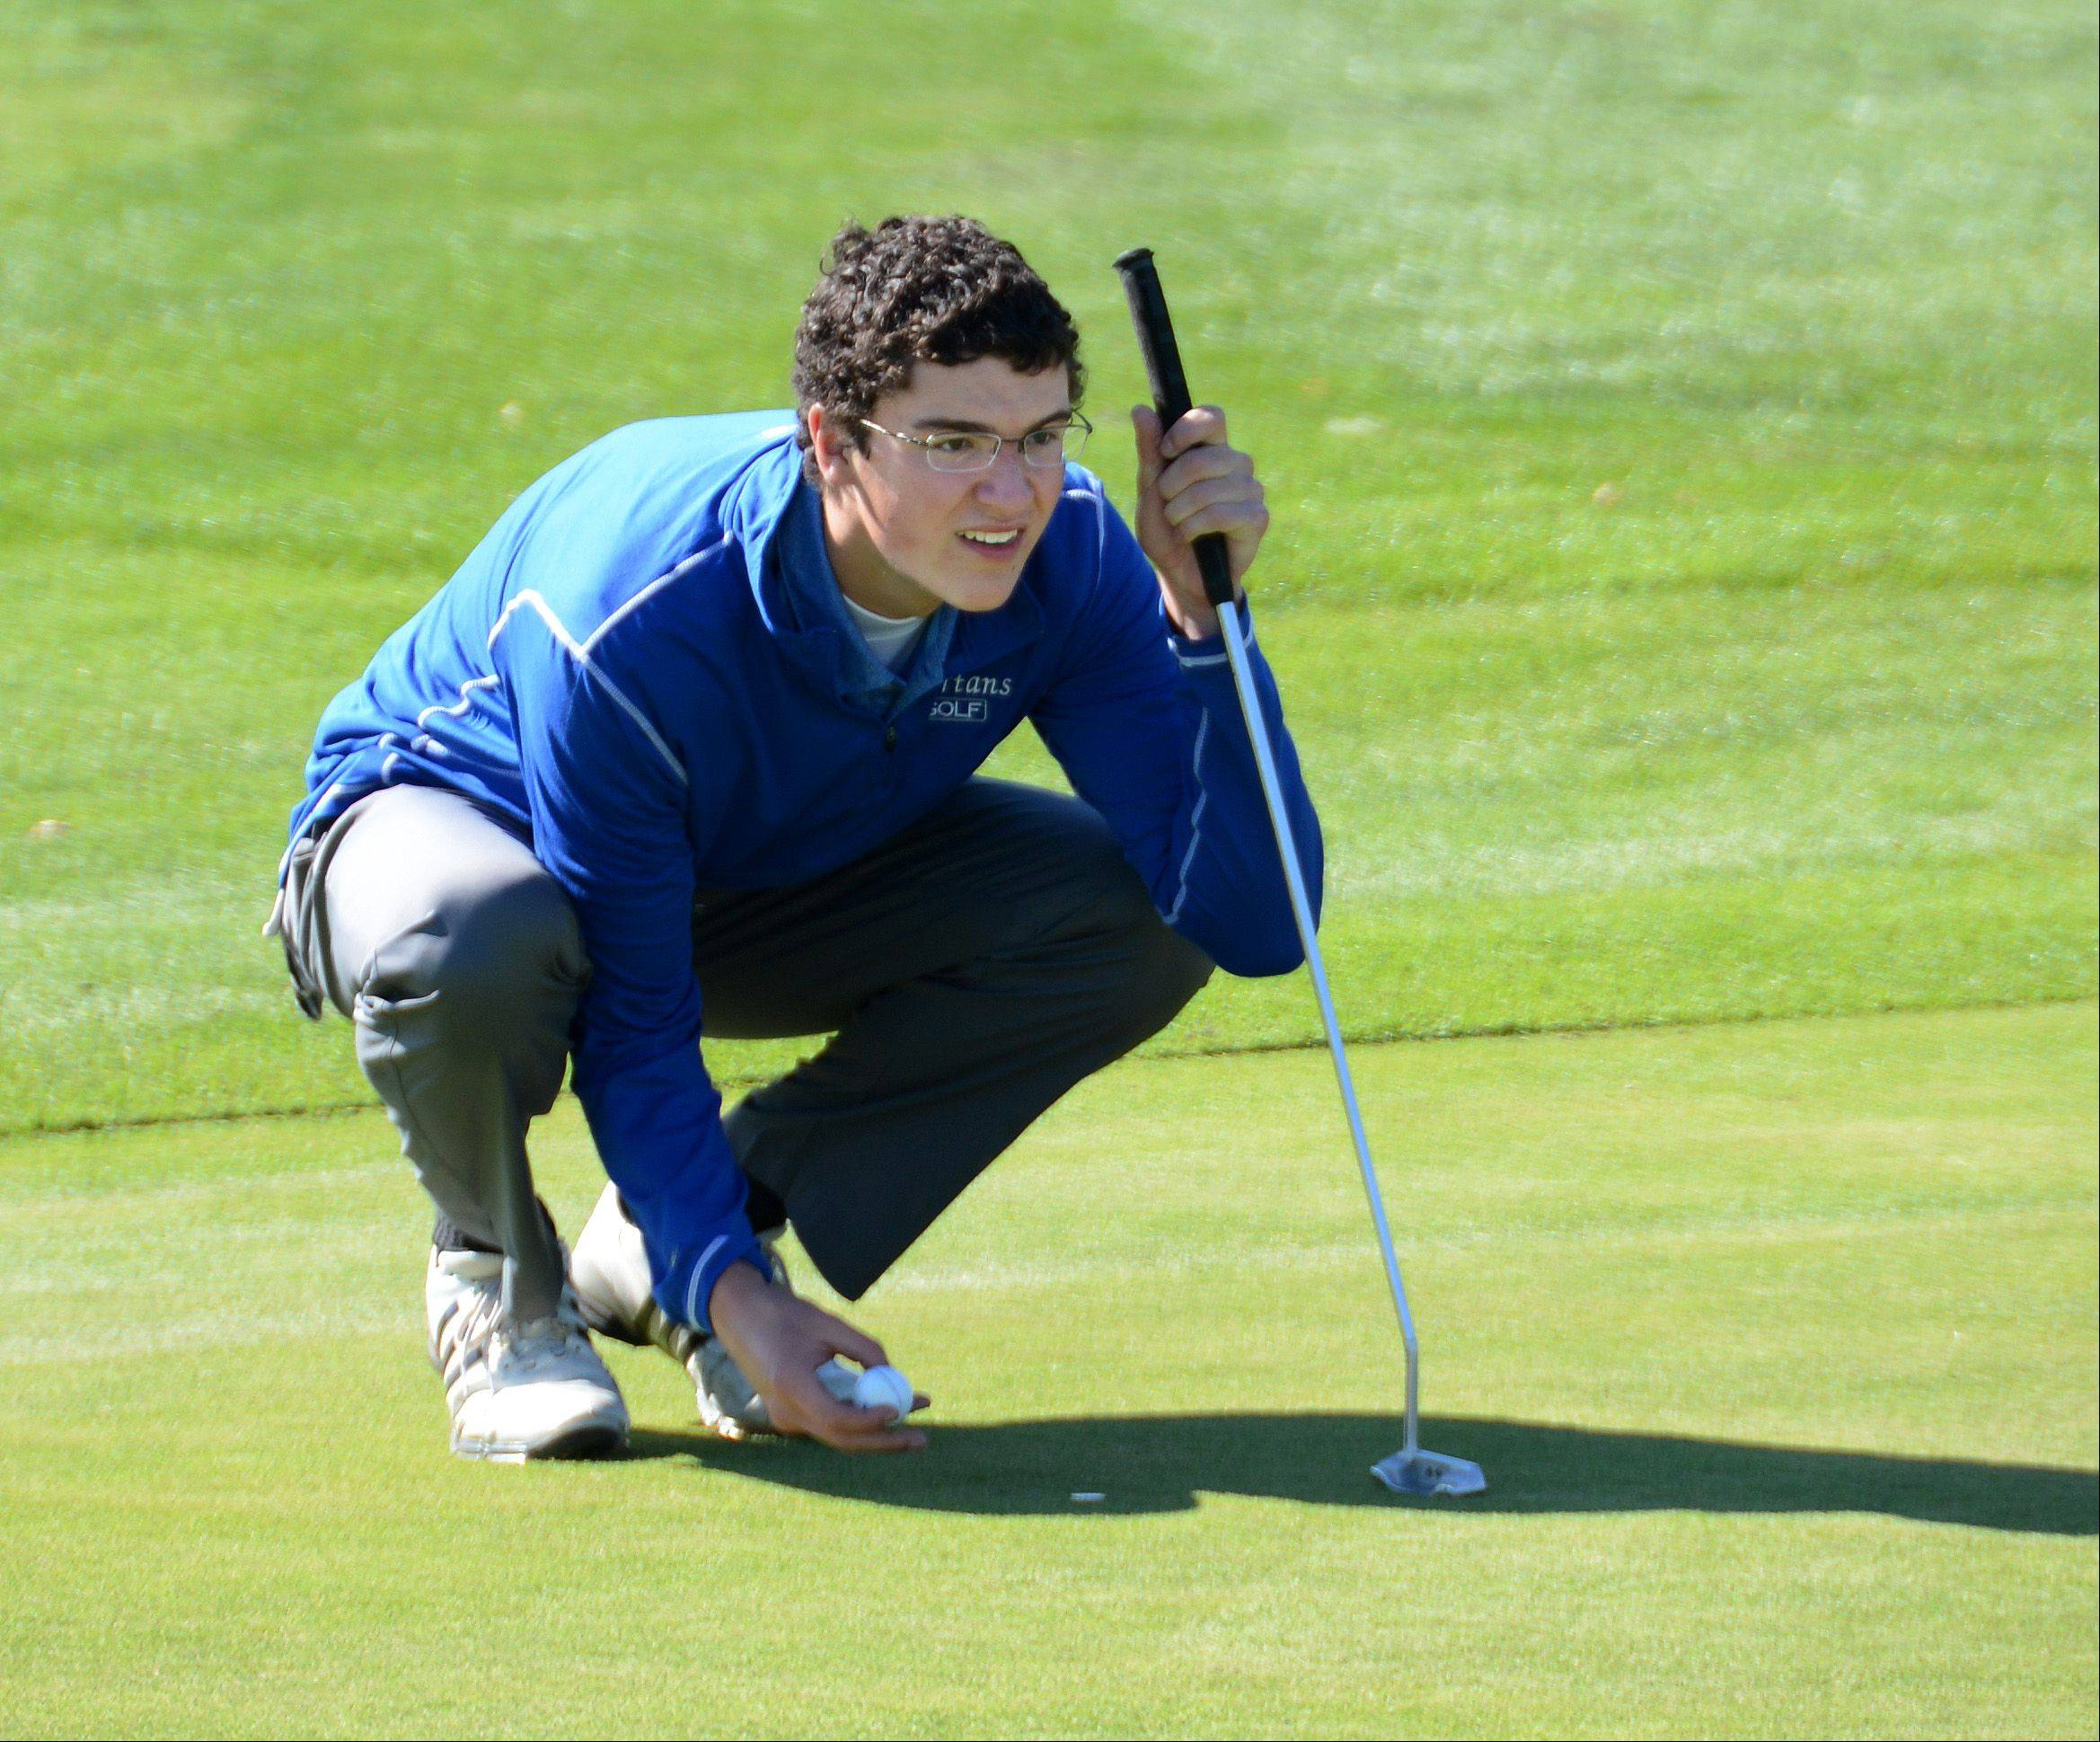 St. Francis' Dan Zurawski lines up a put on the ninth hole. Class 2A boys golf sectional Monday at Broken Arrow Golf Course in Lockport.